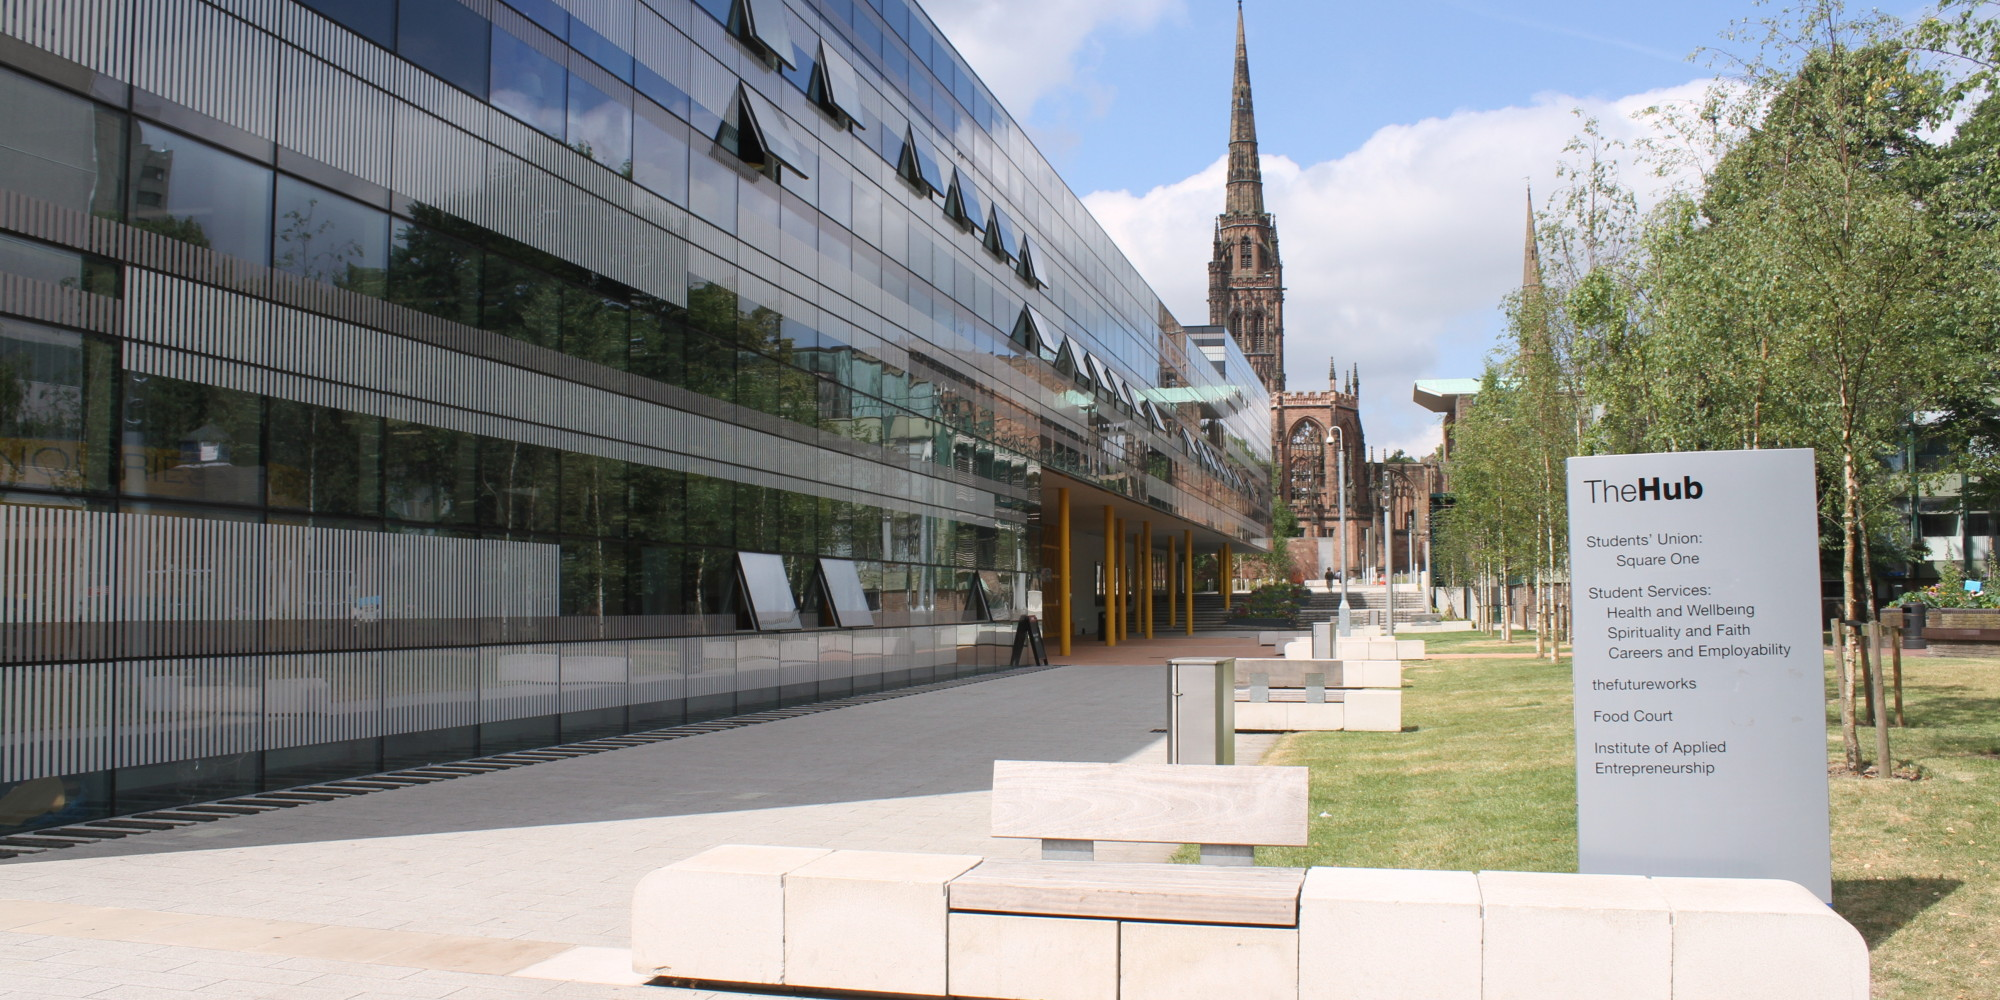 coventry university pips russell group institutions to make it into top 20 in universities